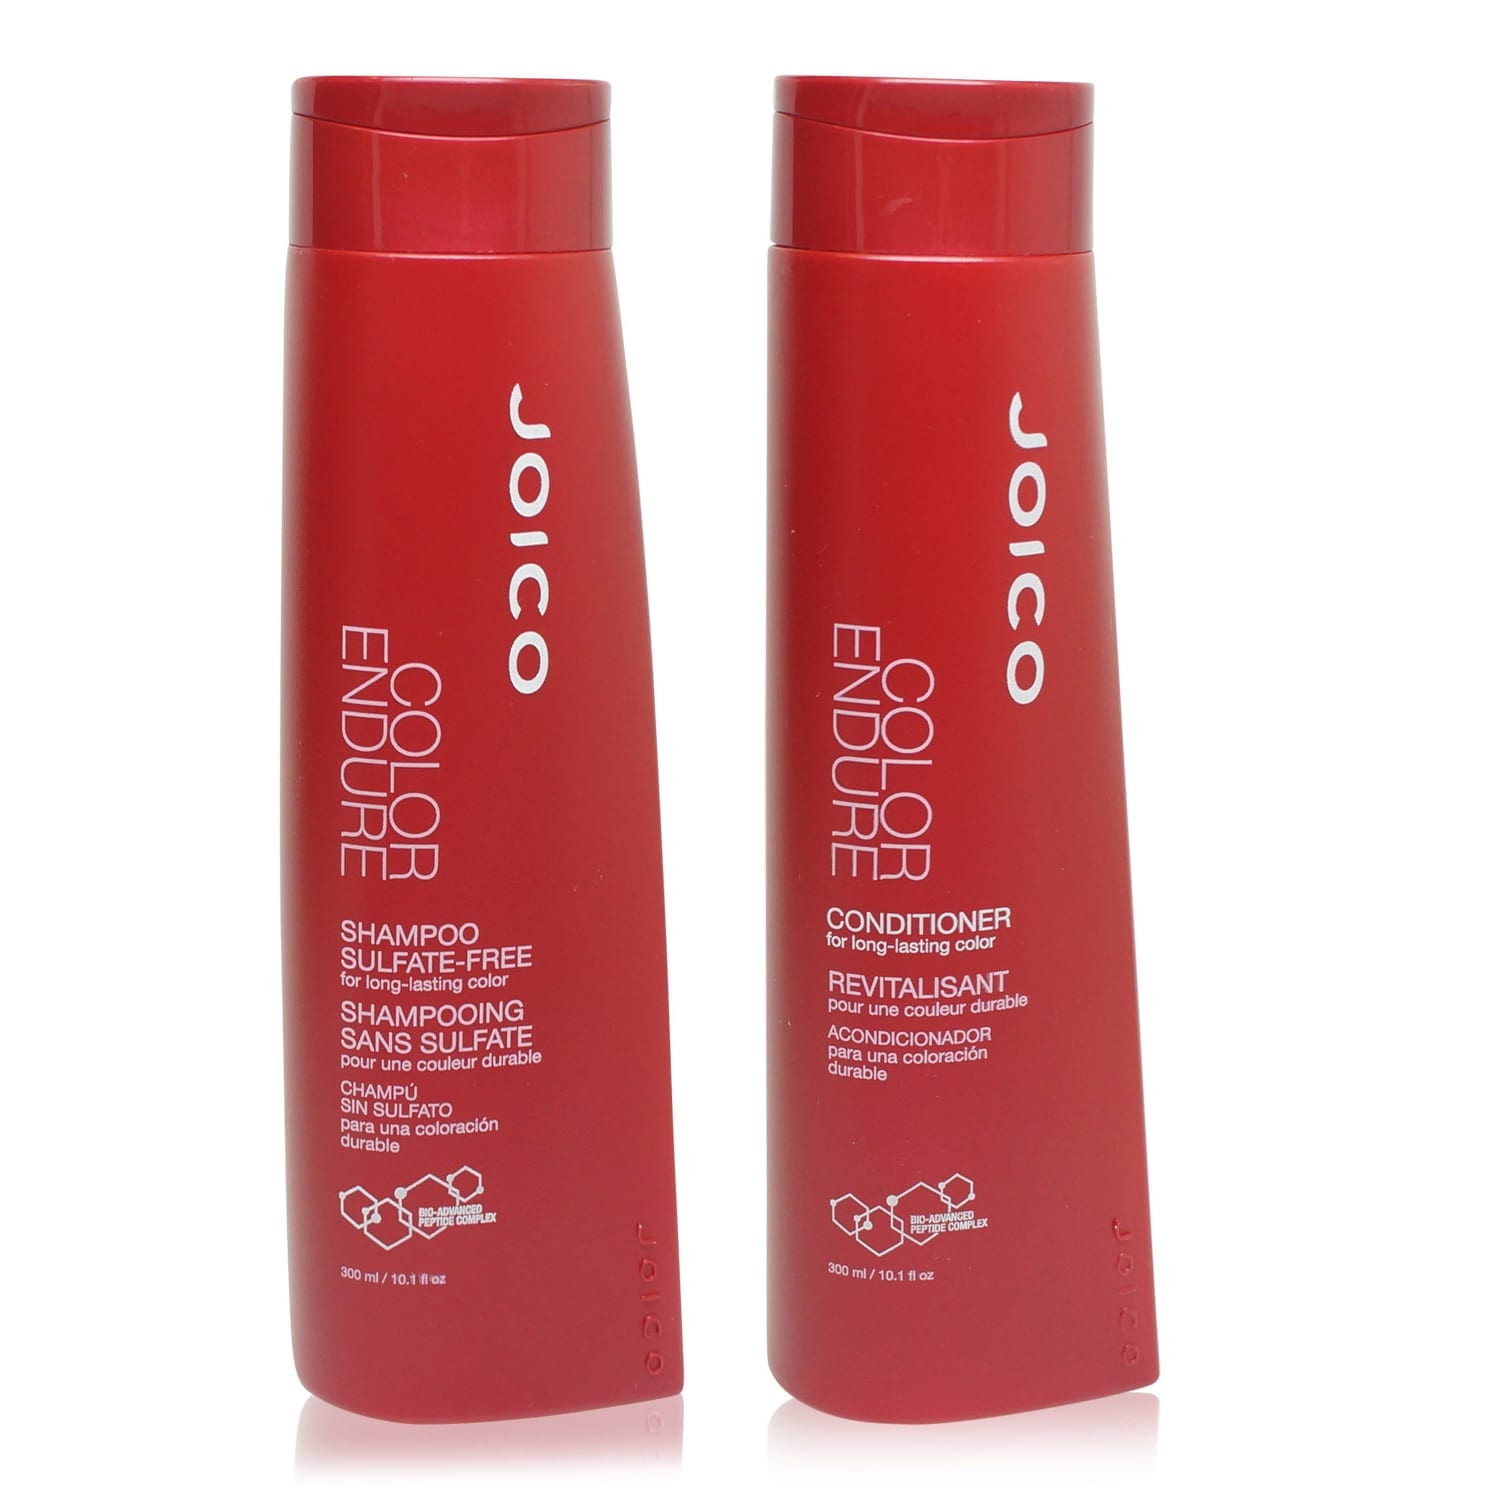 Joico Color Endure Shampoo and Conditioner Sulfate-Free 10.1 Oz combo pack